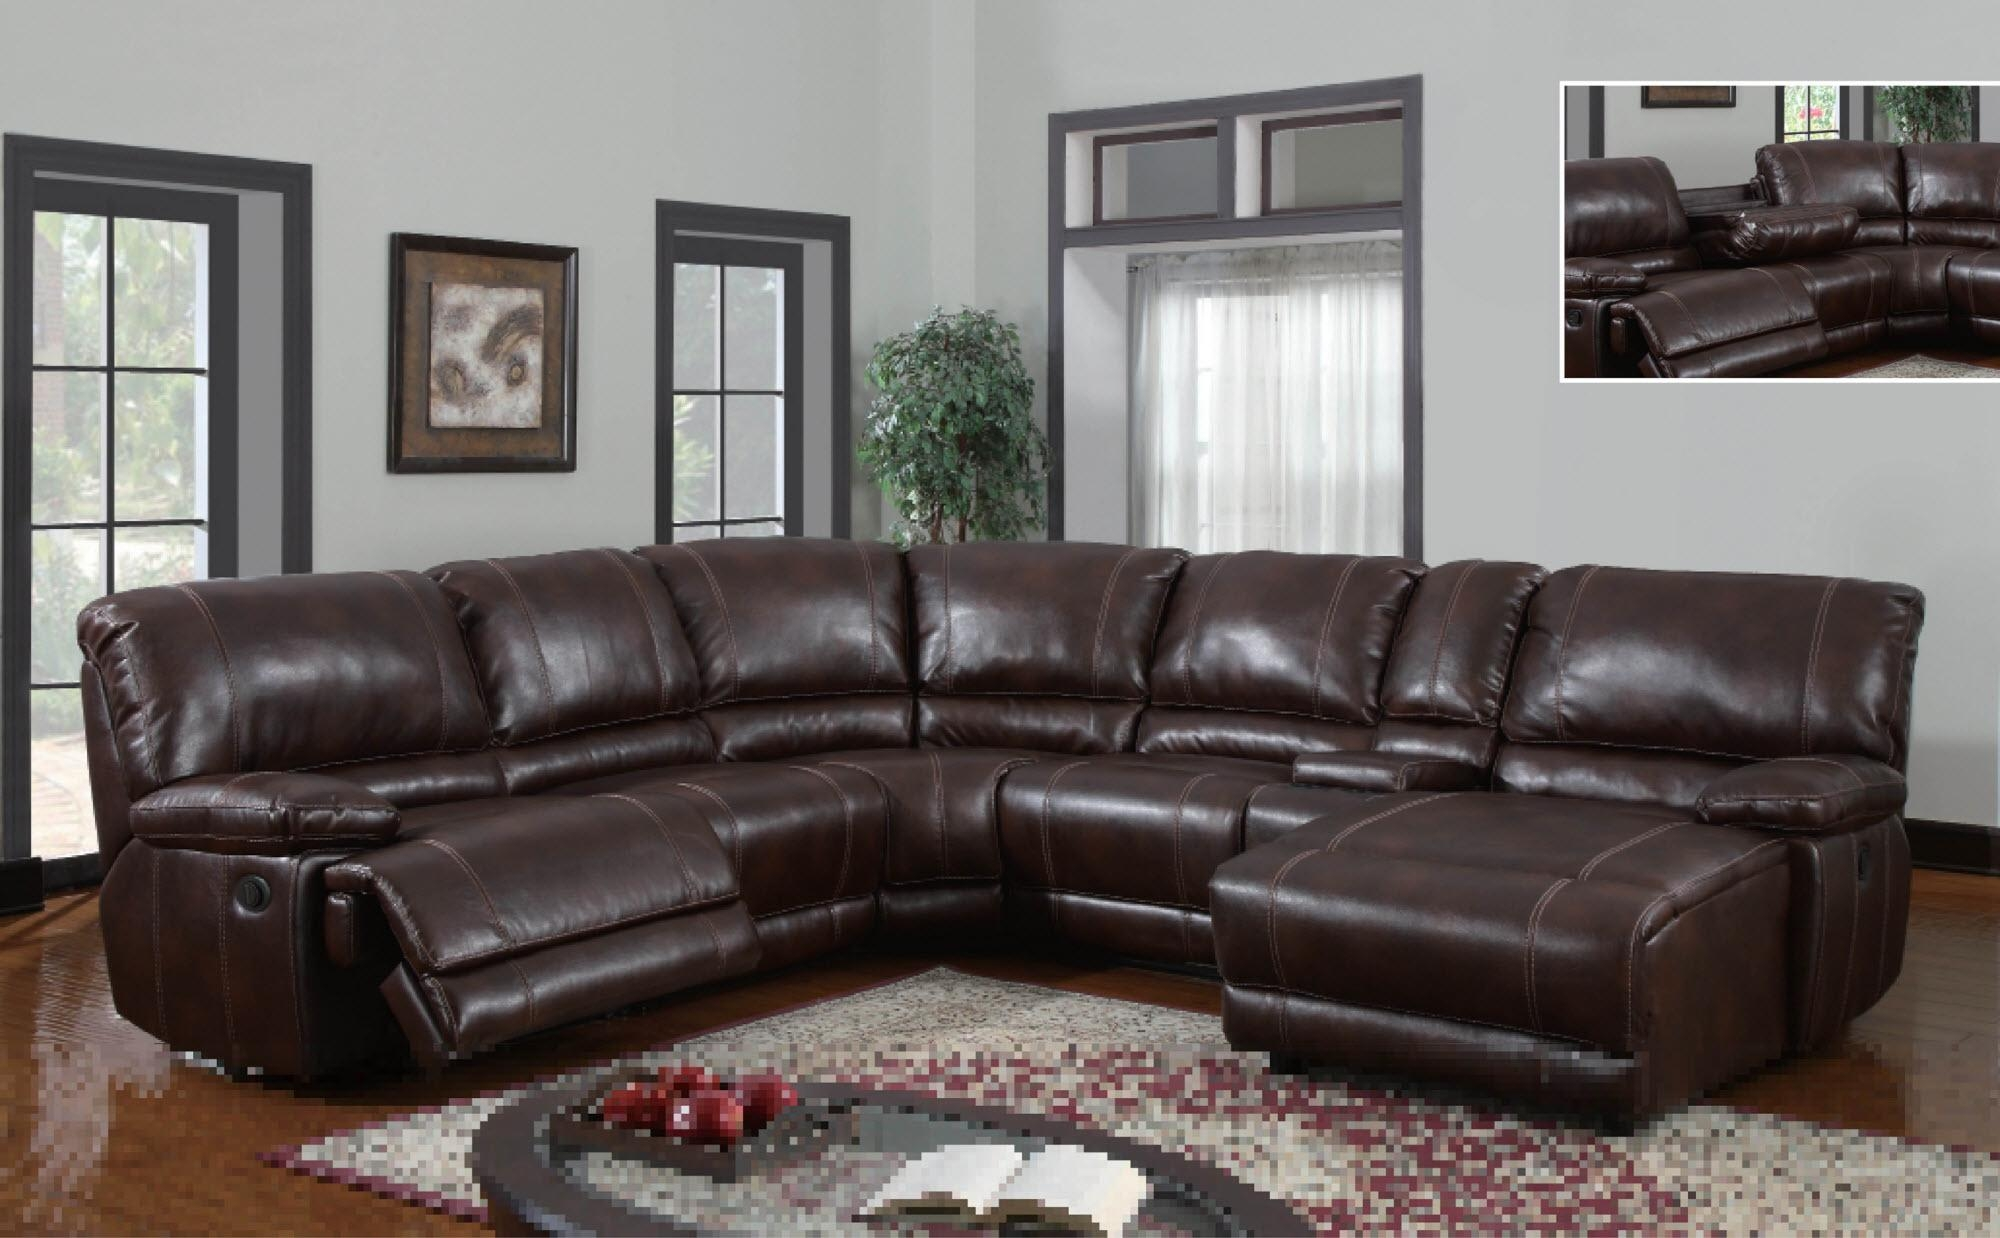 Hotelsbacau – Sectional Sofa Ideas Regarding Curved Sectional Sofa With Recliner (Image 13 of 15)